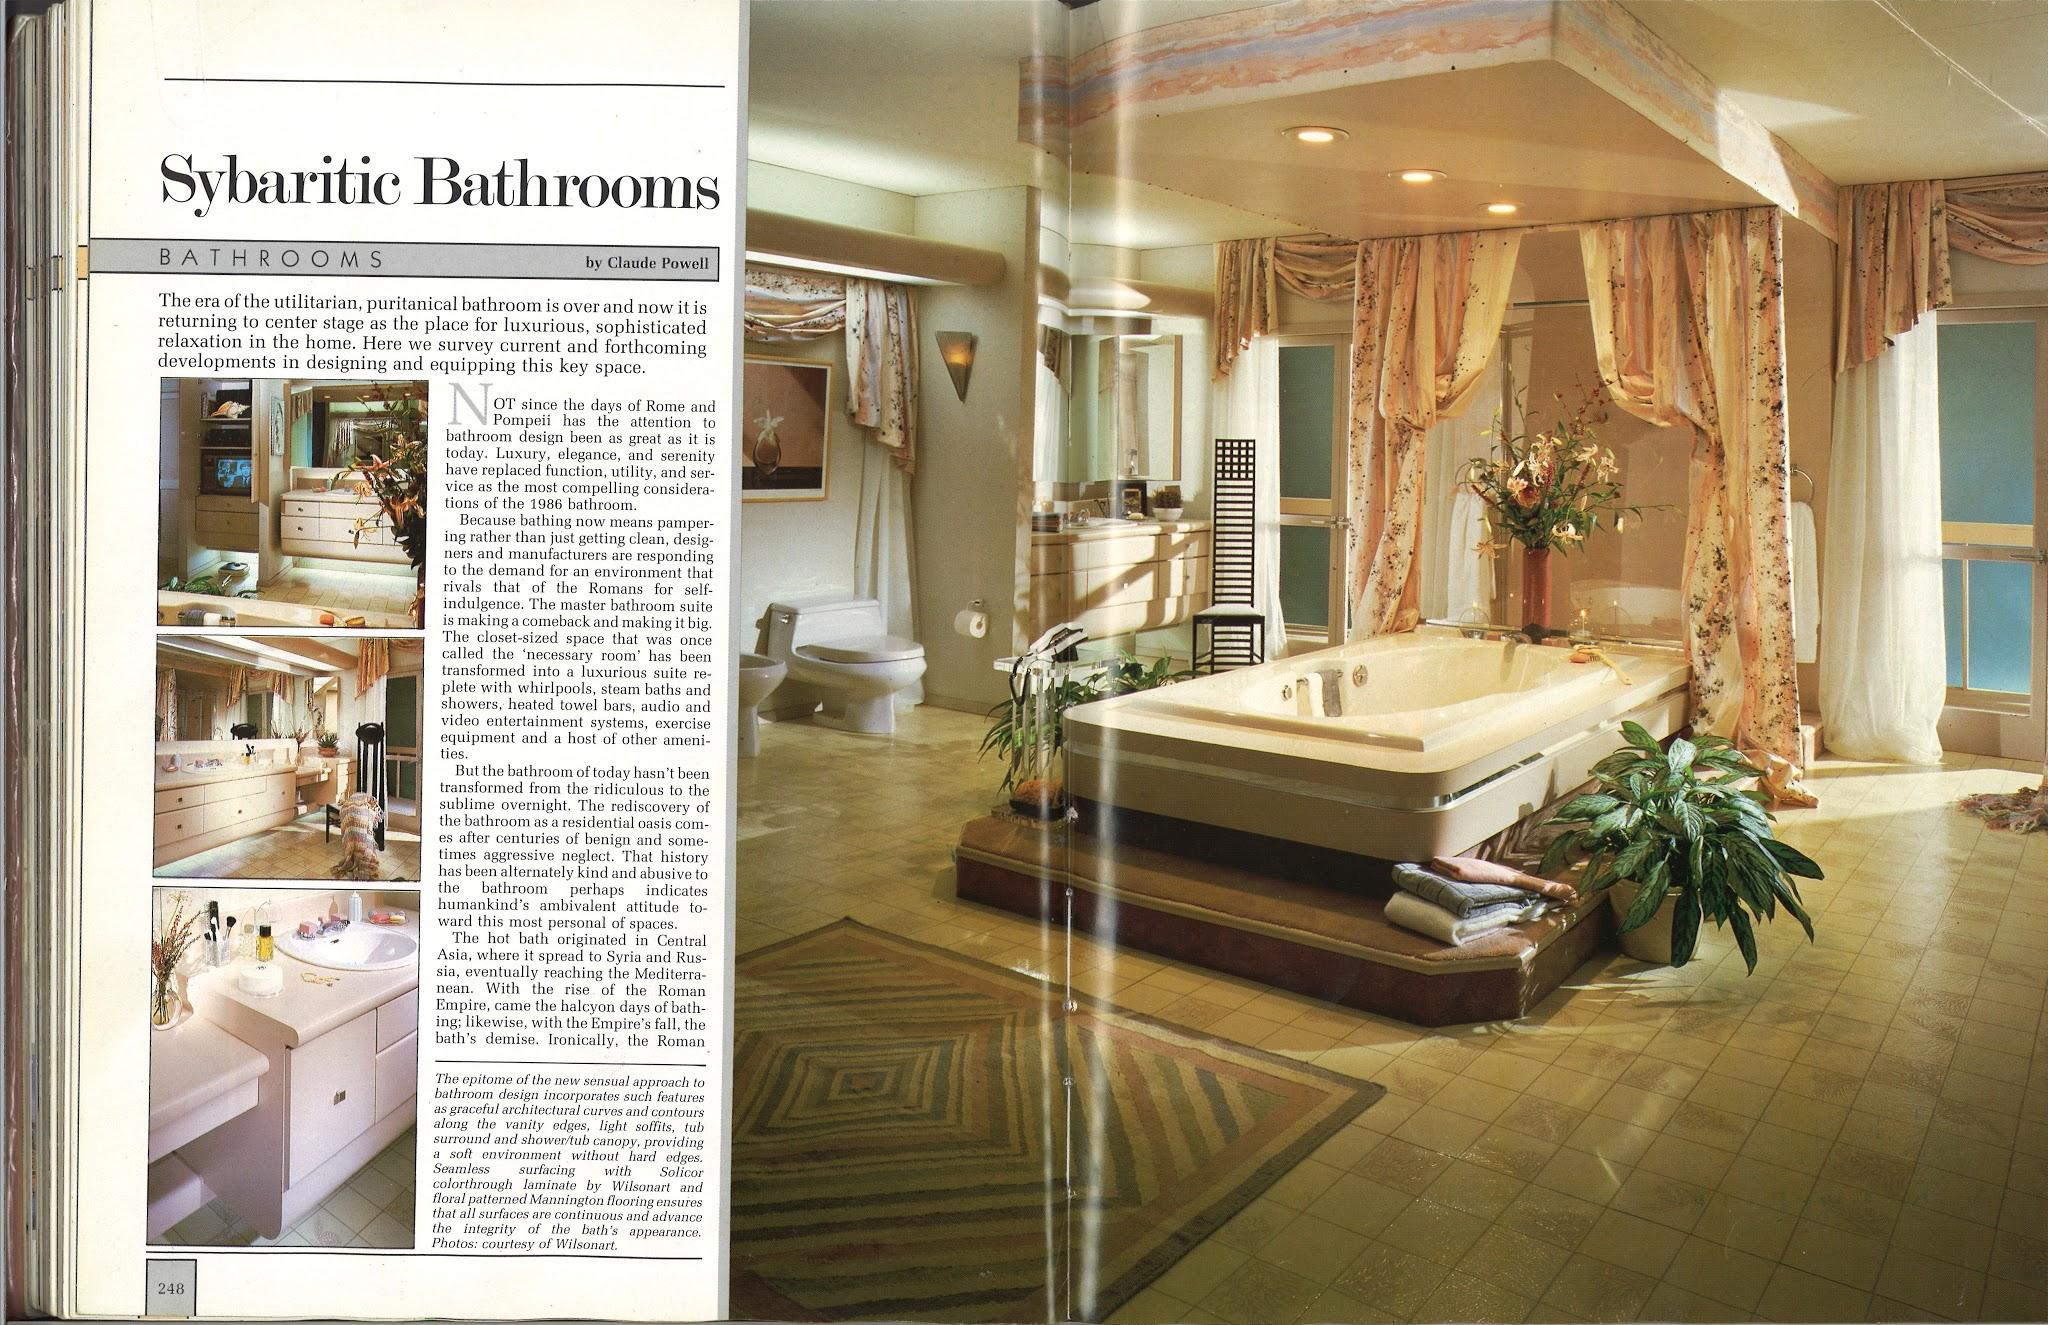 From International Collection Of Interior Design (1986)